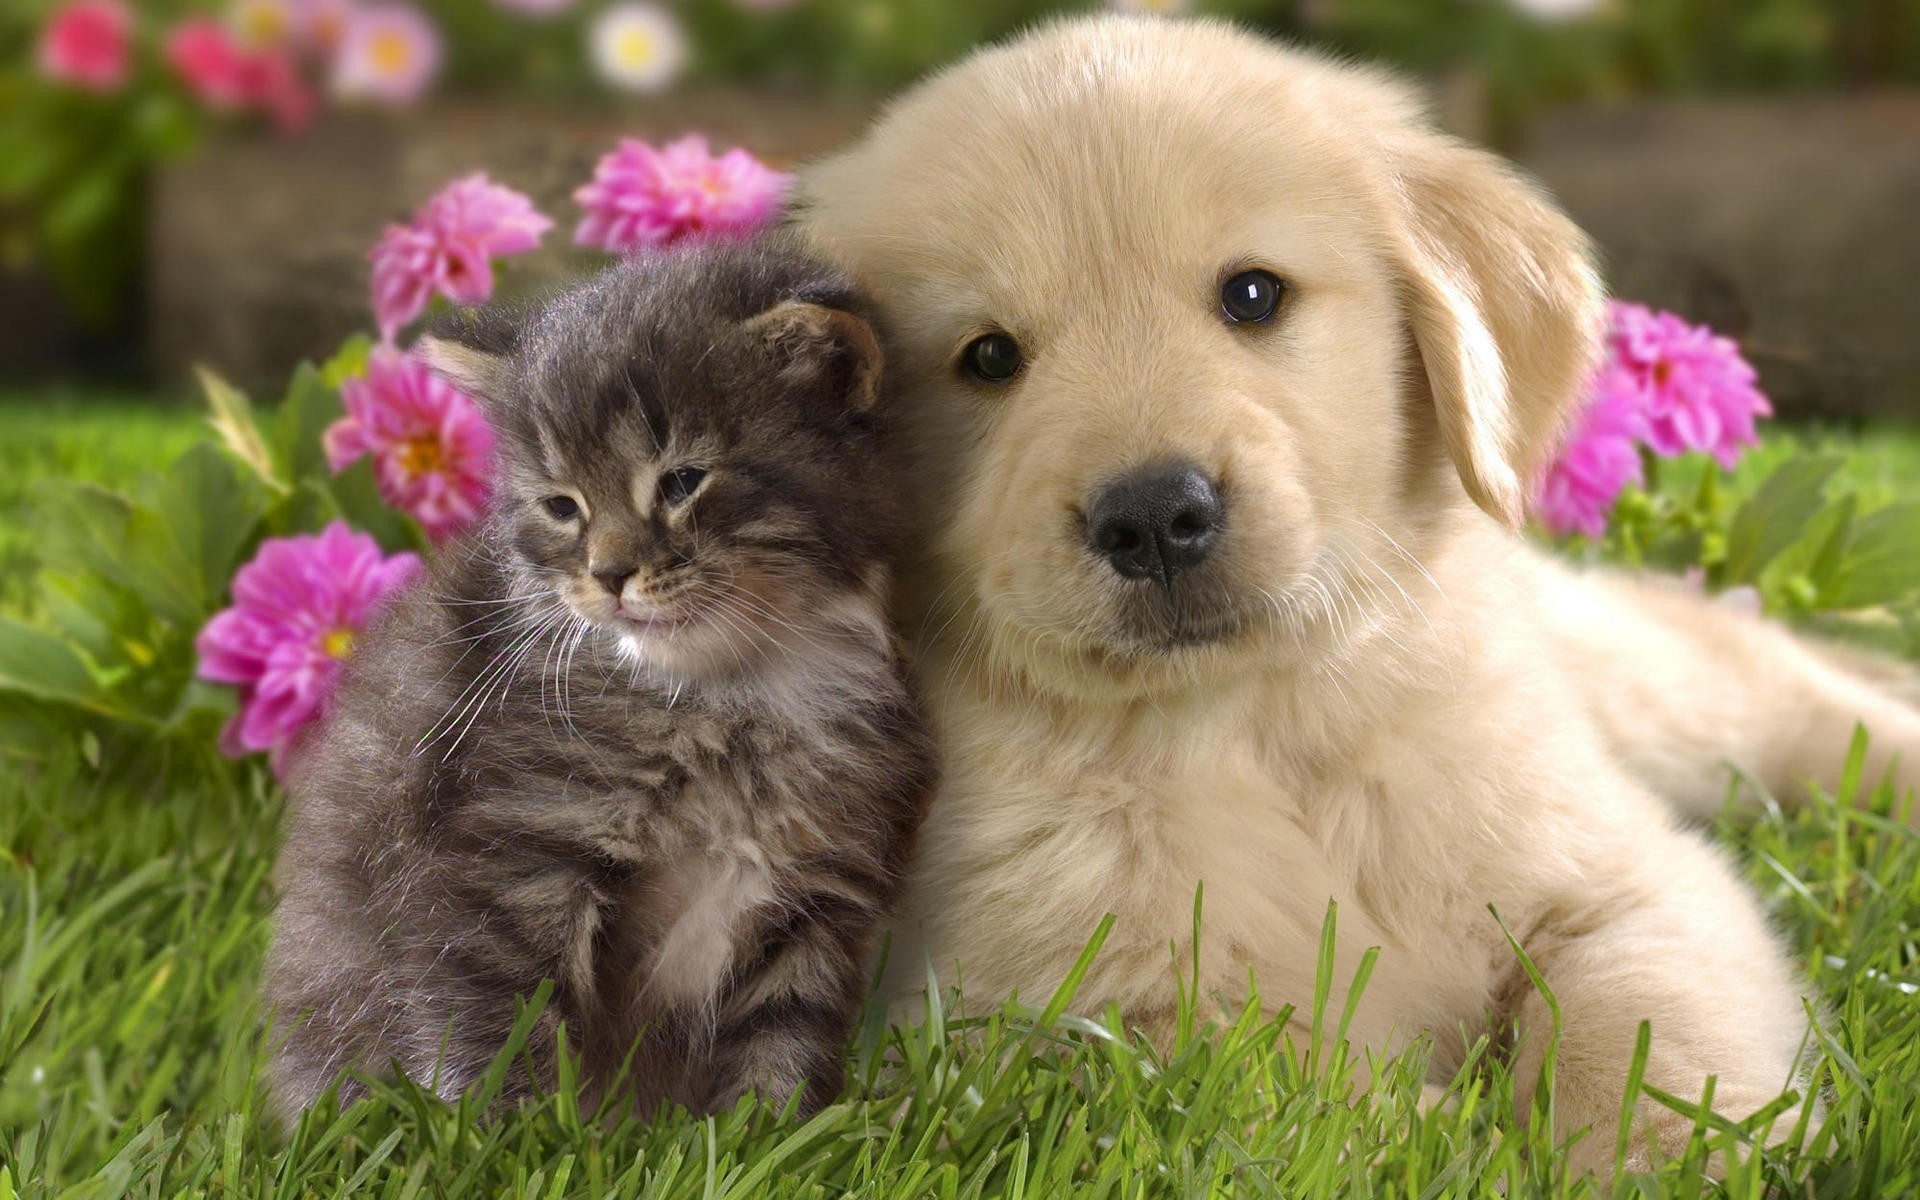 1920x1200 Download Cute Kitten And Puppy Wallpaper Free Wallpapers - PetPictures